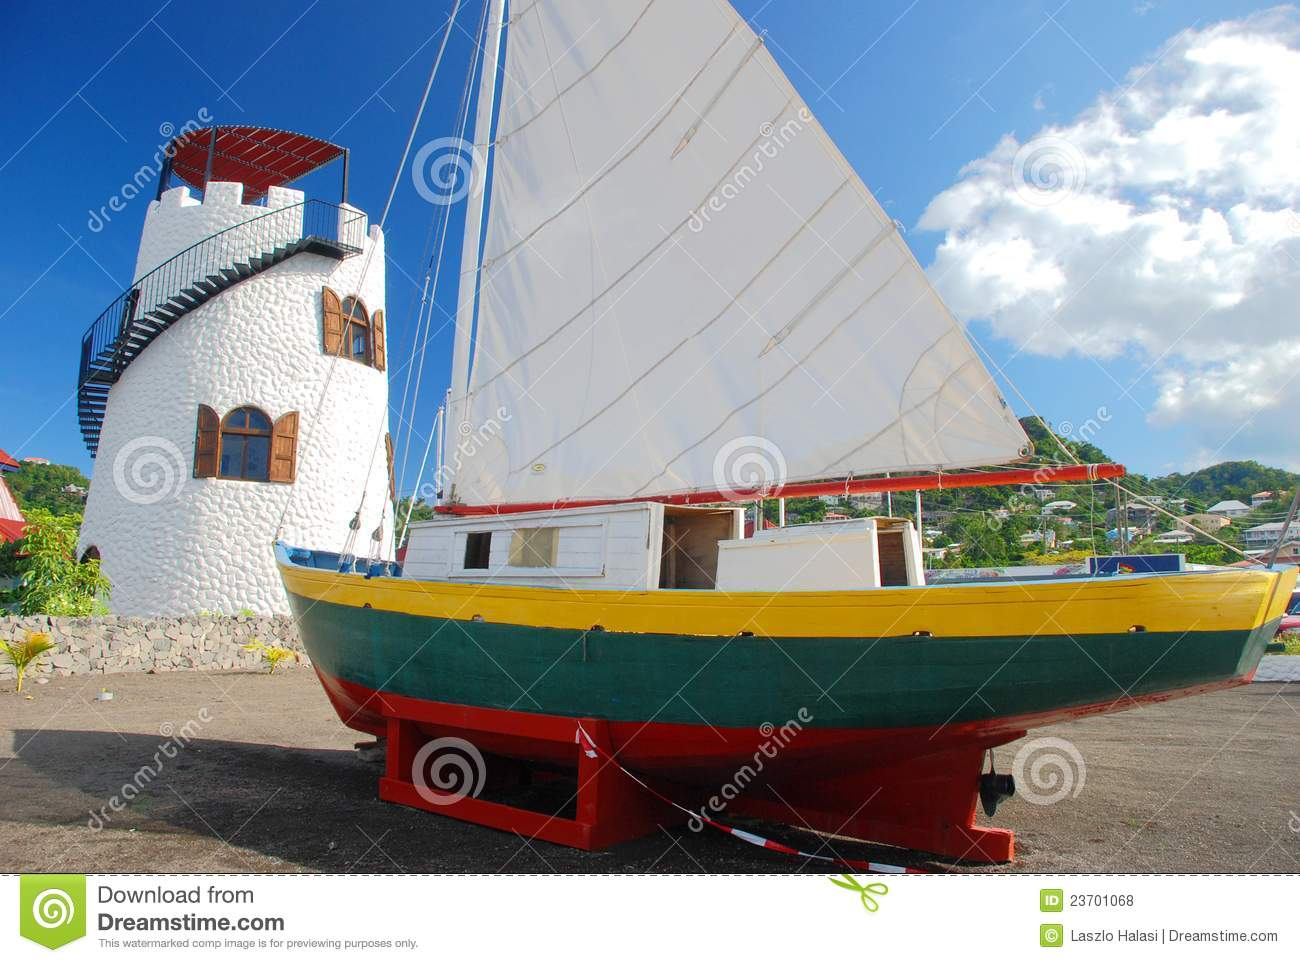 Lighthouse and sailboat on Grenada